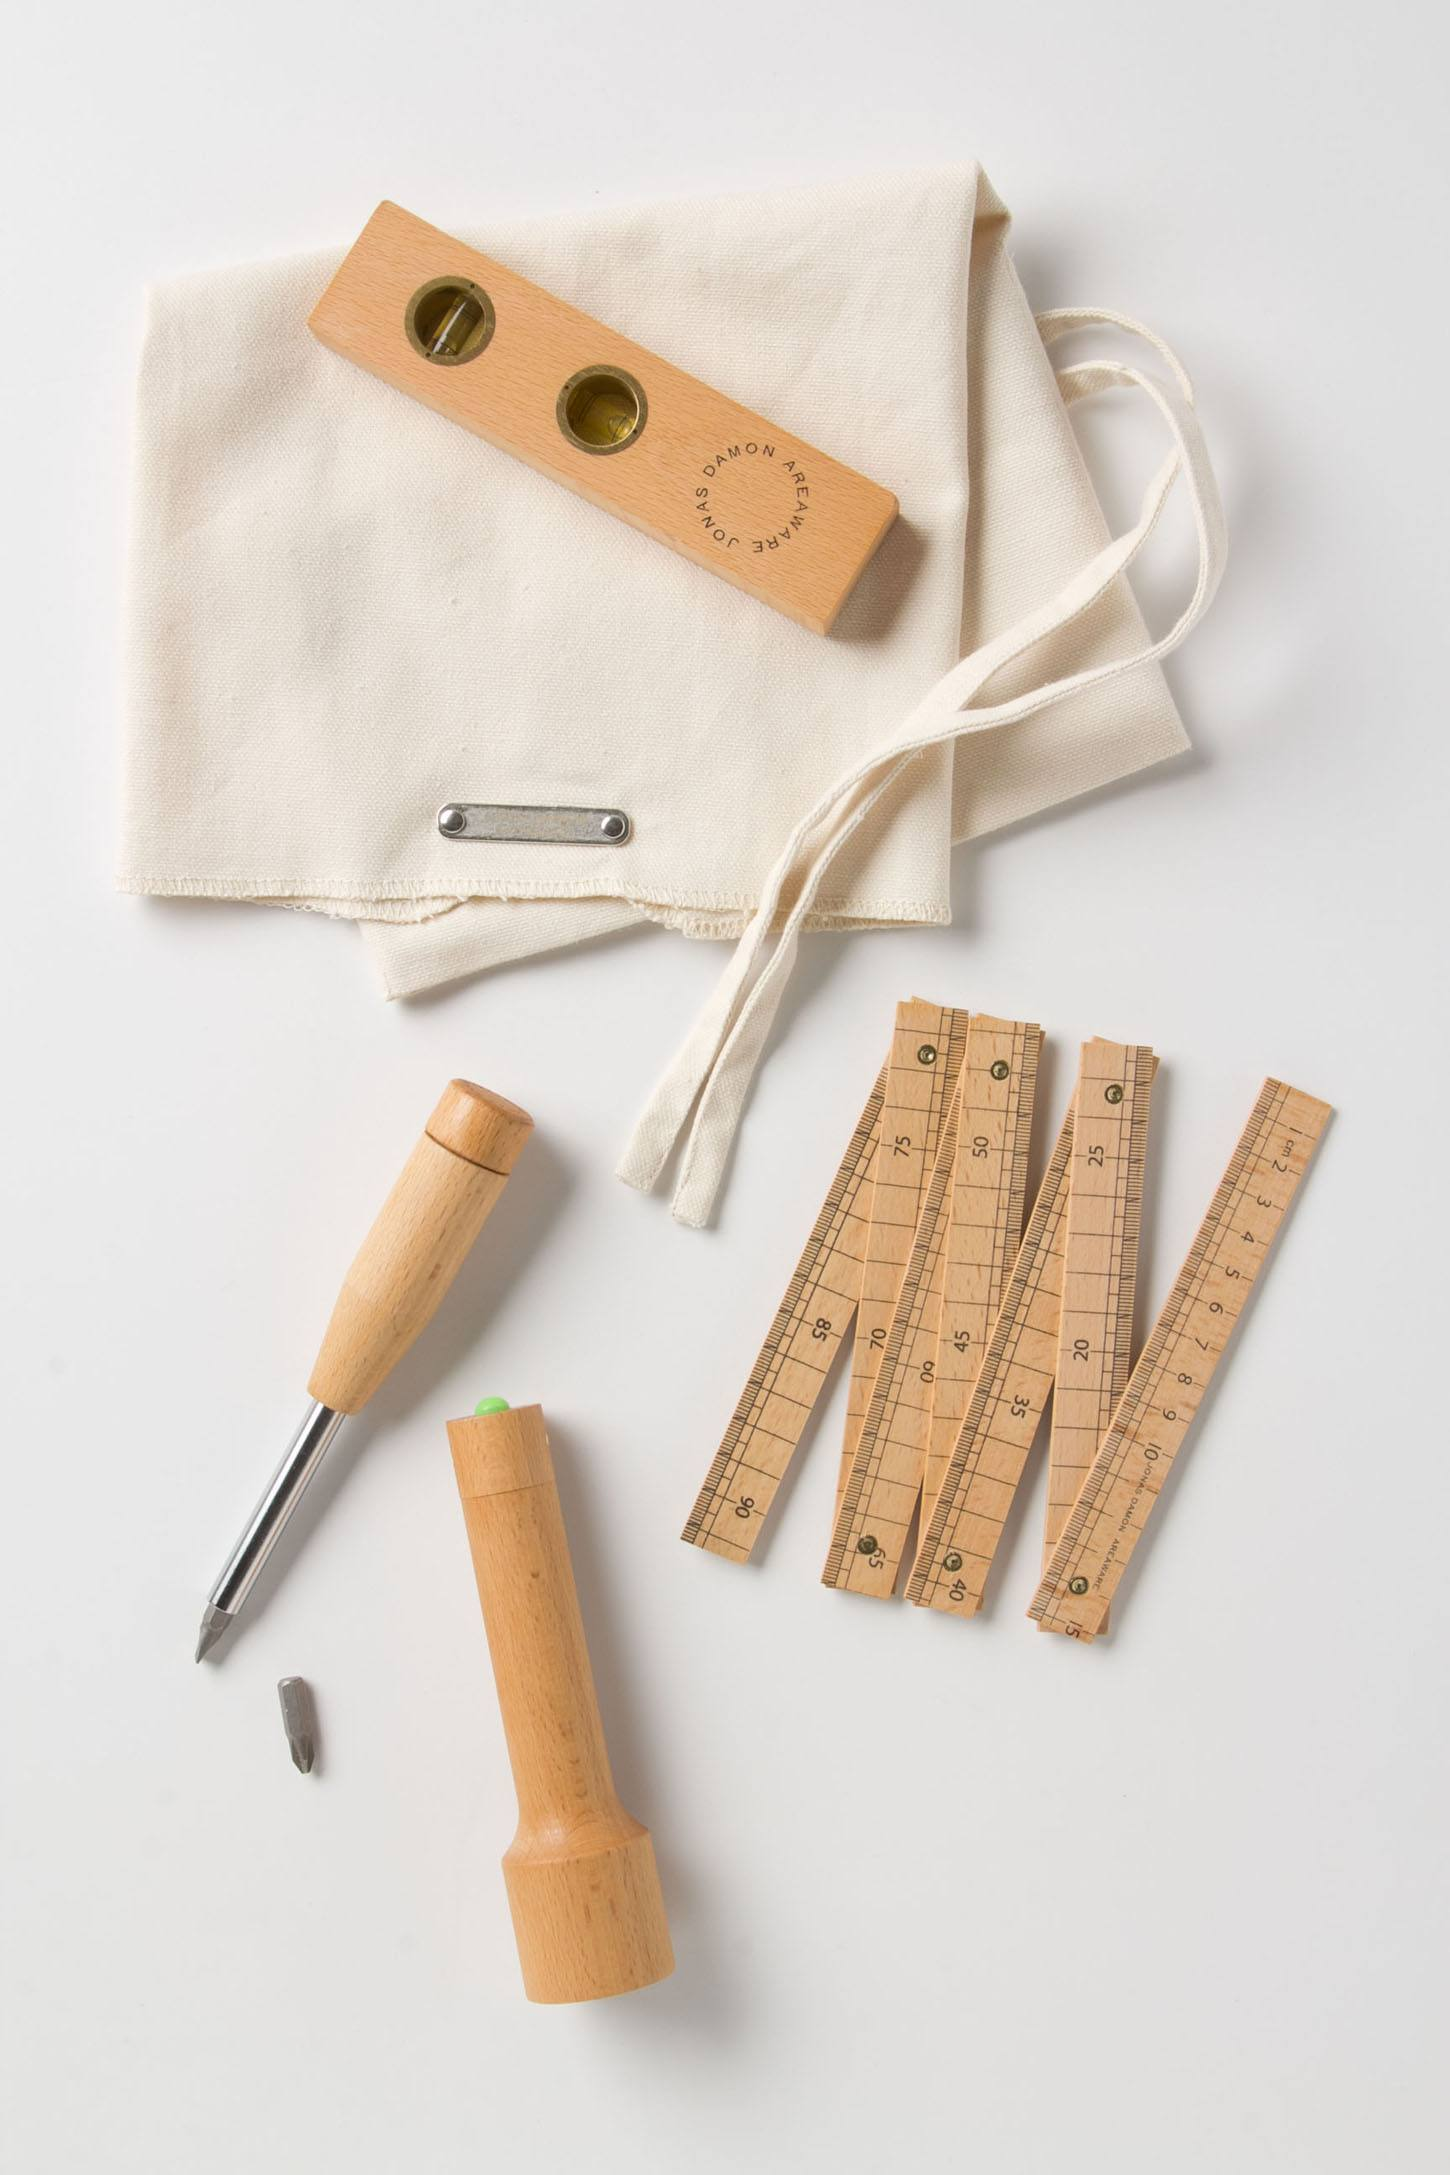 Household Wooden Tool Set